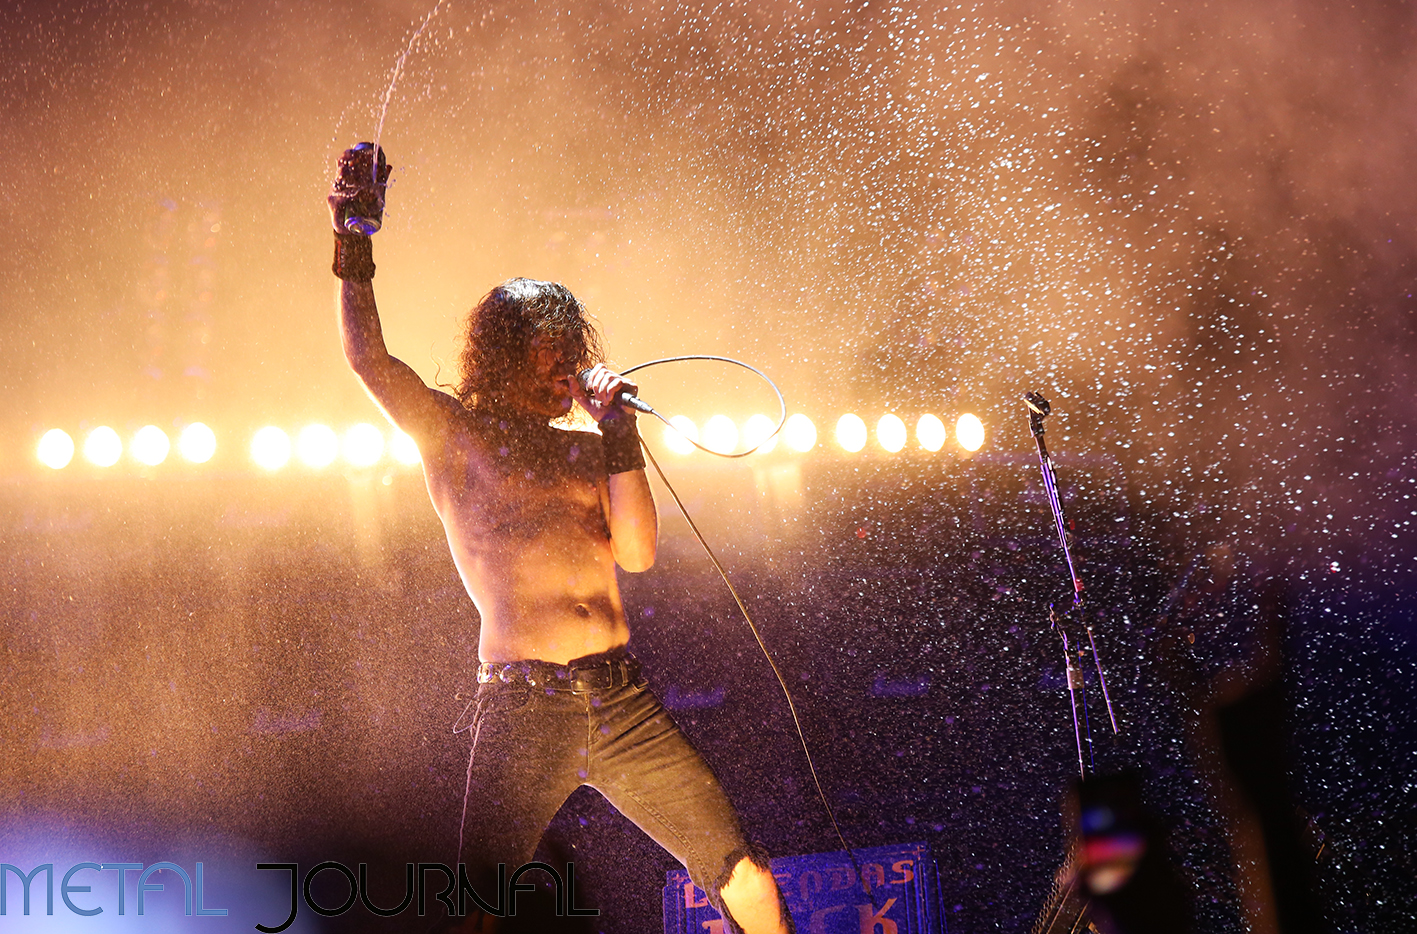 airbourne - leyendas del rock 2019 metal journal pic 2